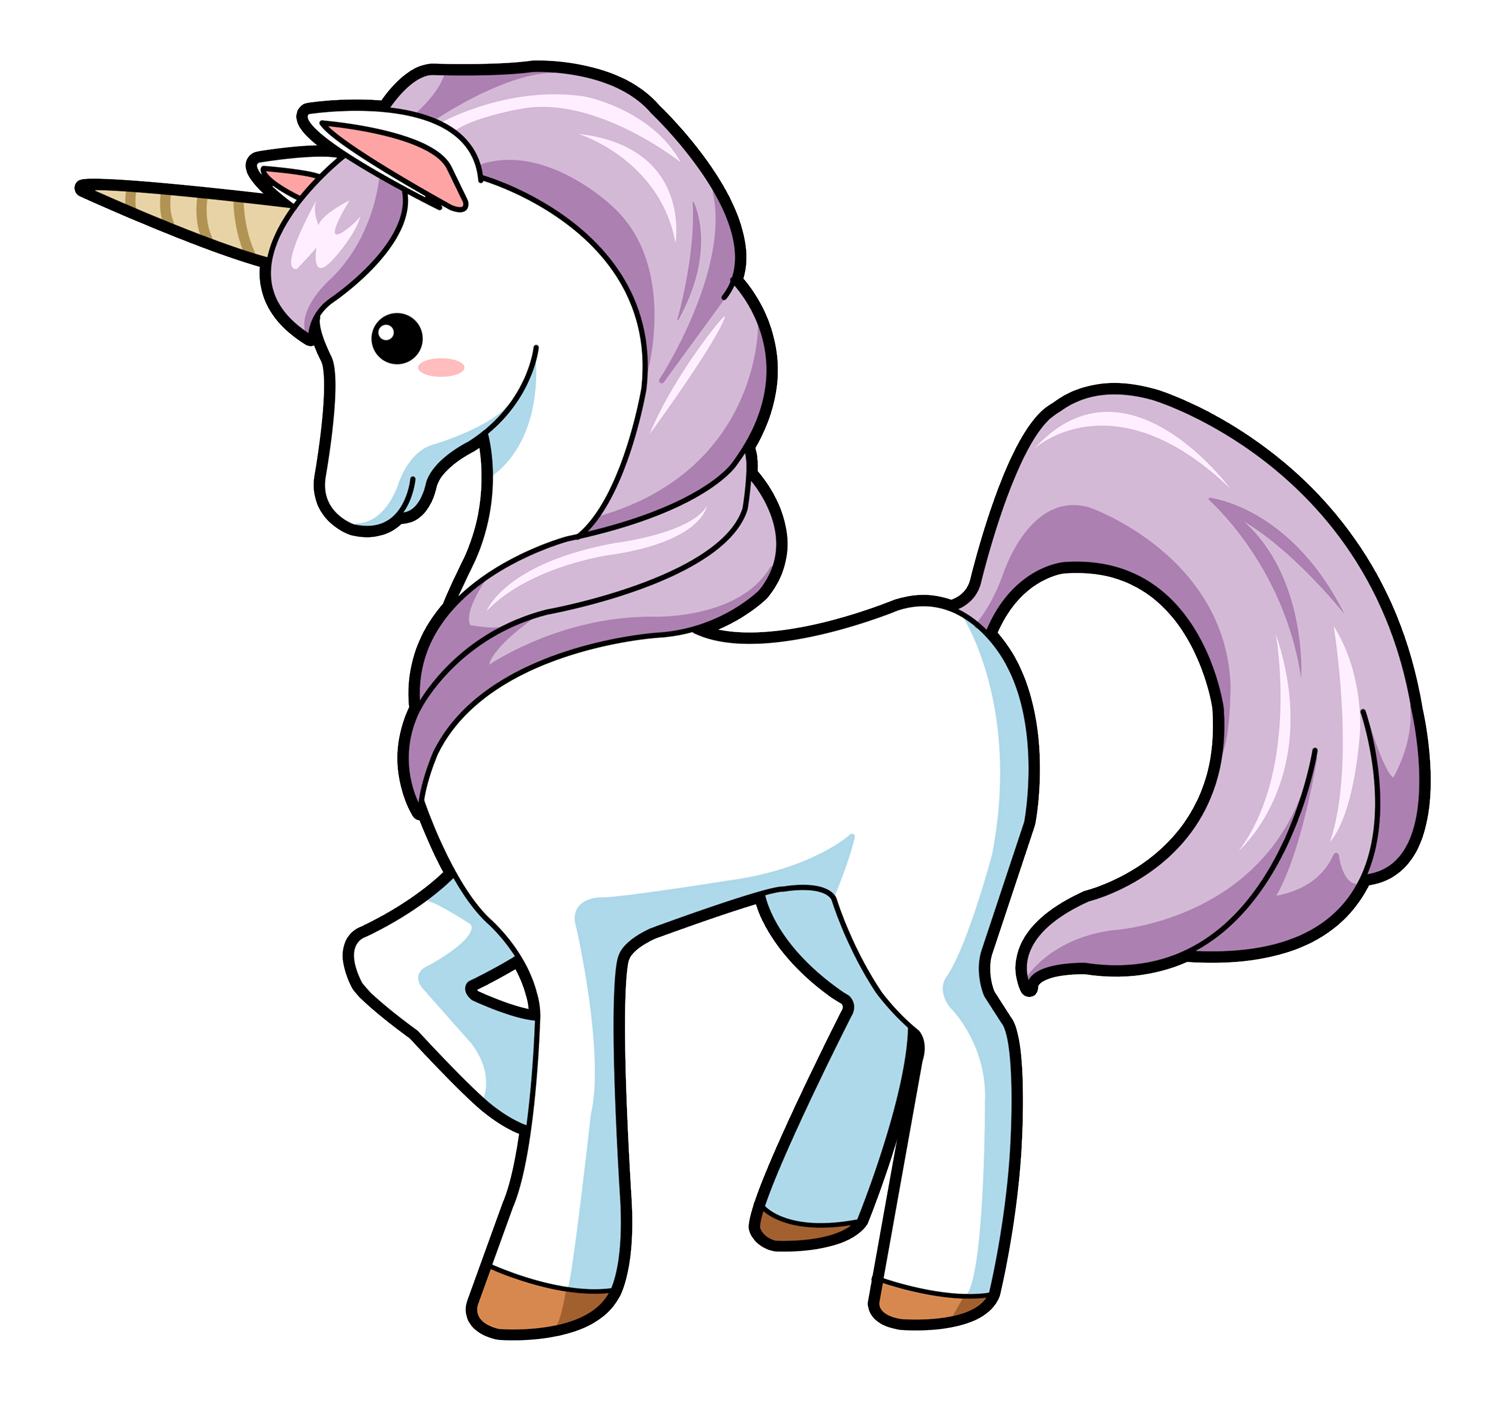 Unicorn clipart #18, Download drawings